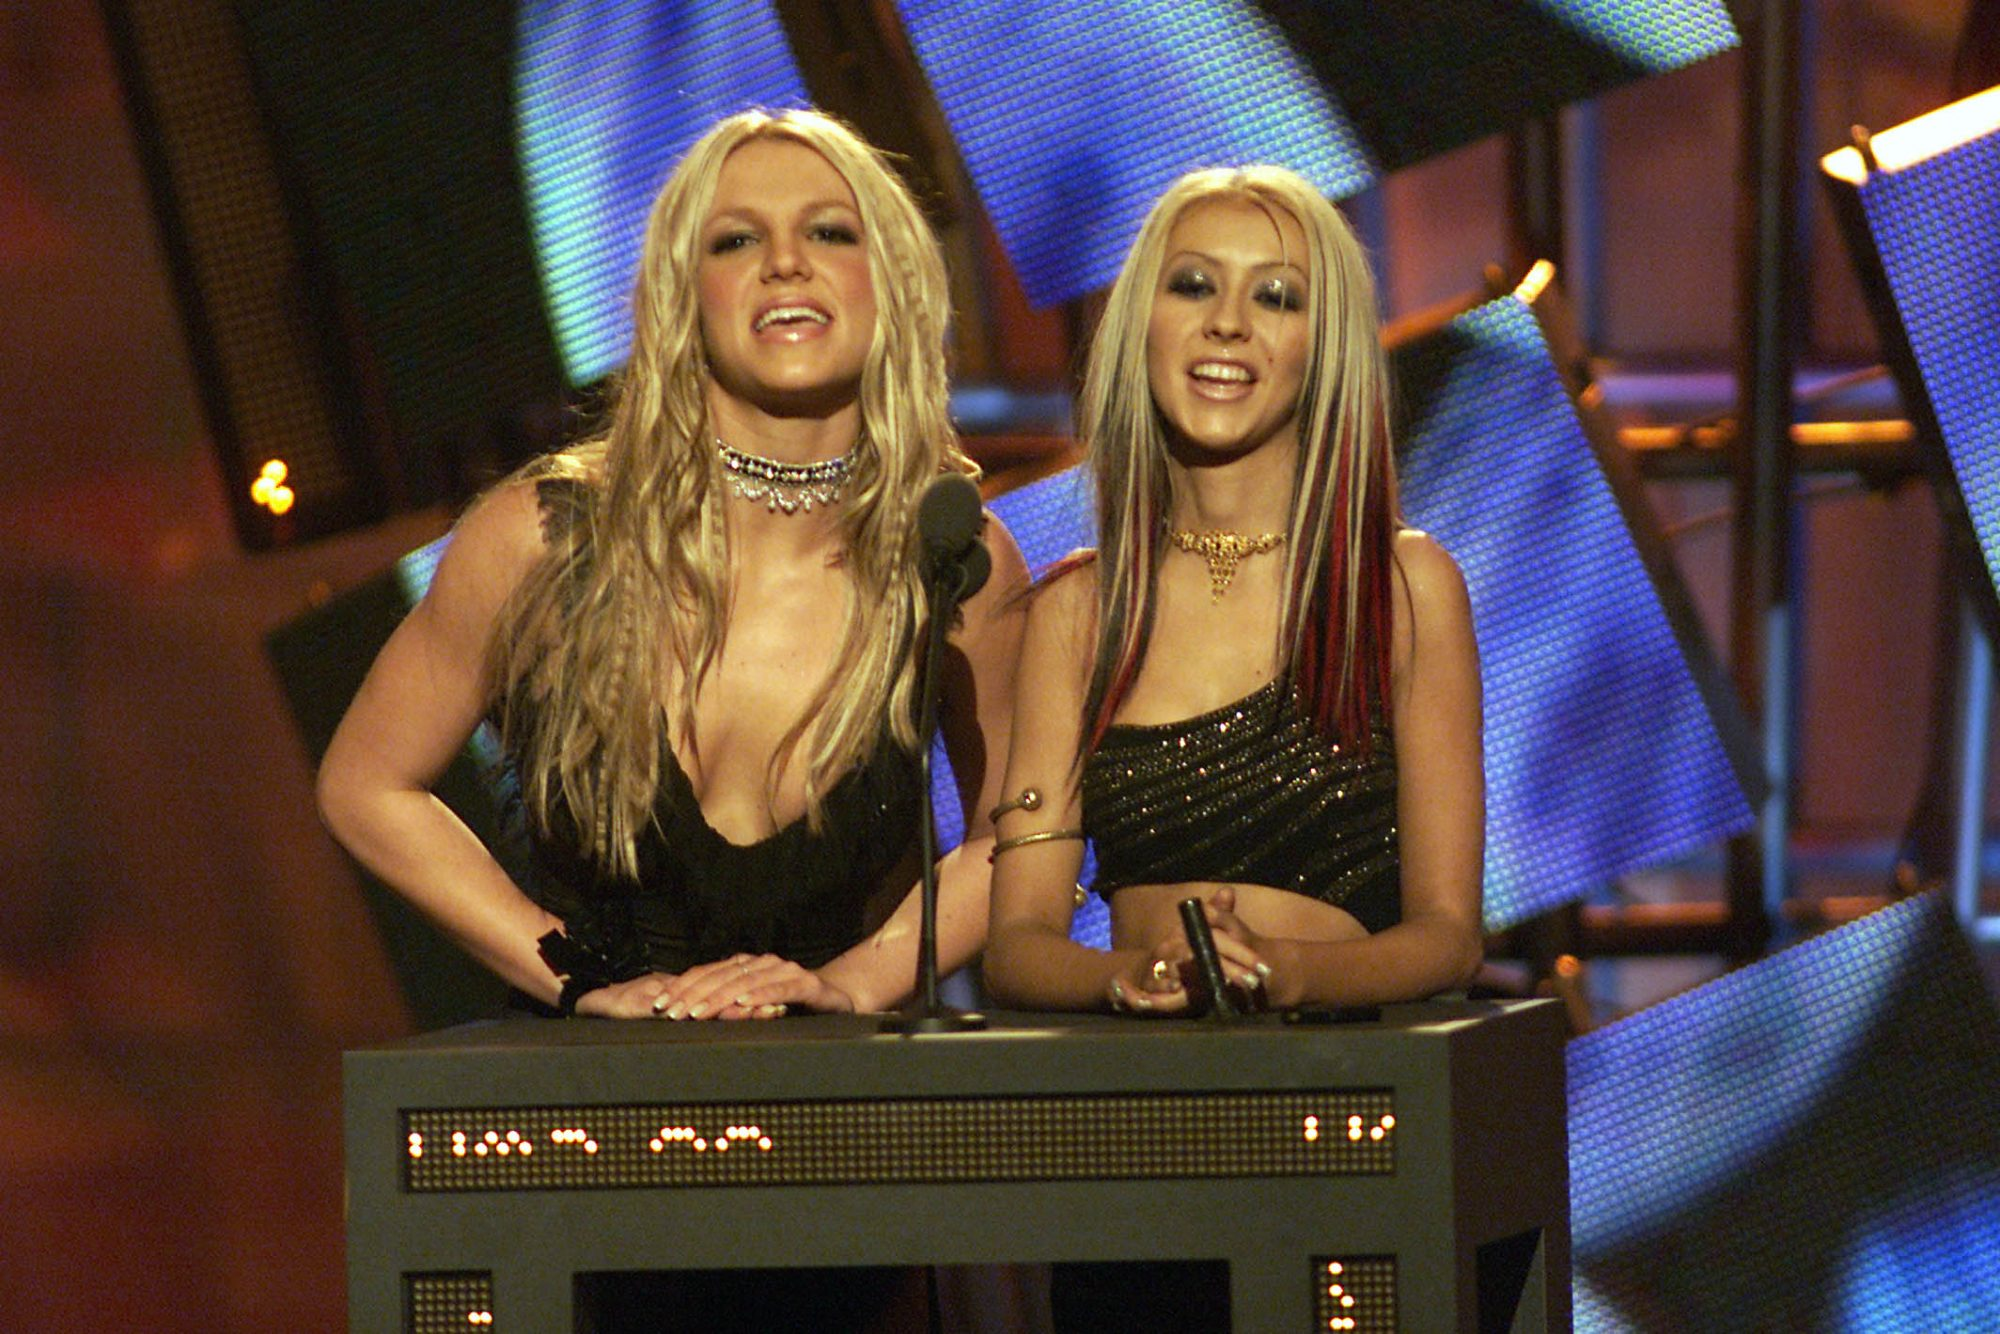 Britney Spears and Christina Aguilera 2000 MTV Music Awards